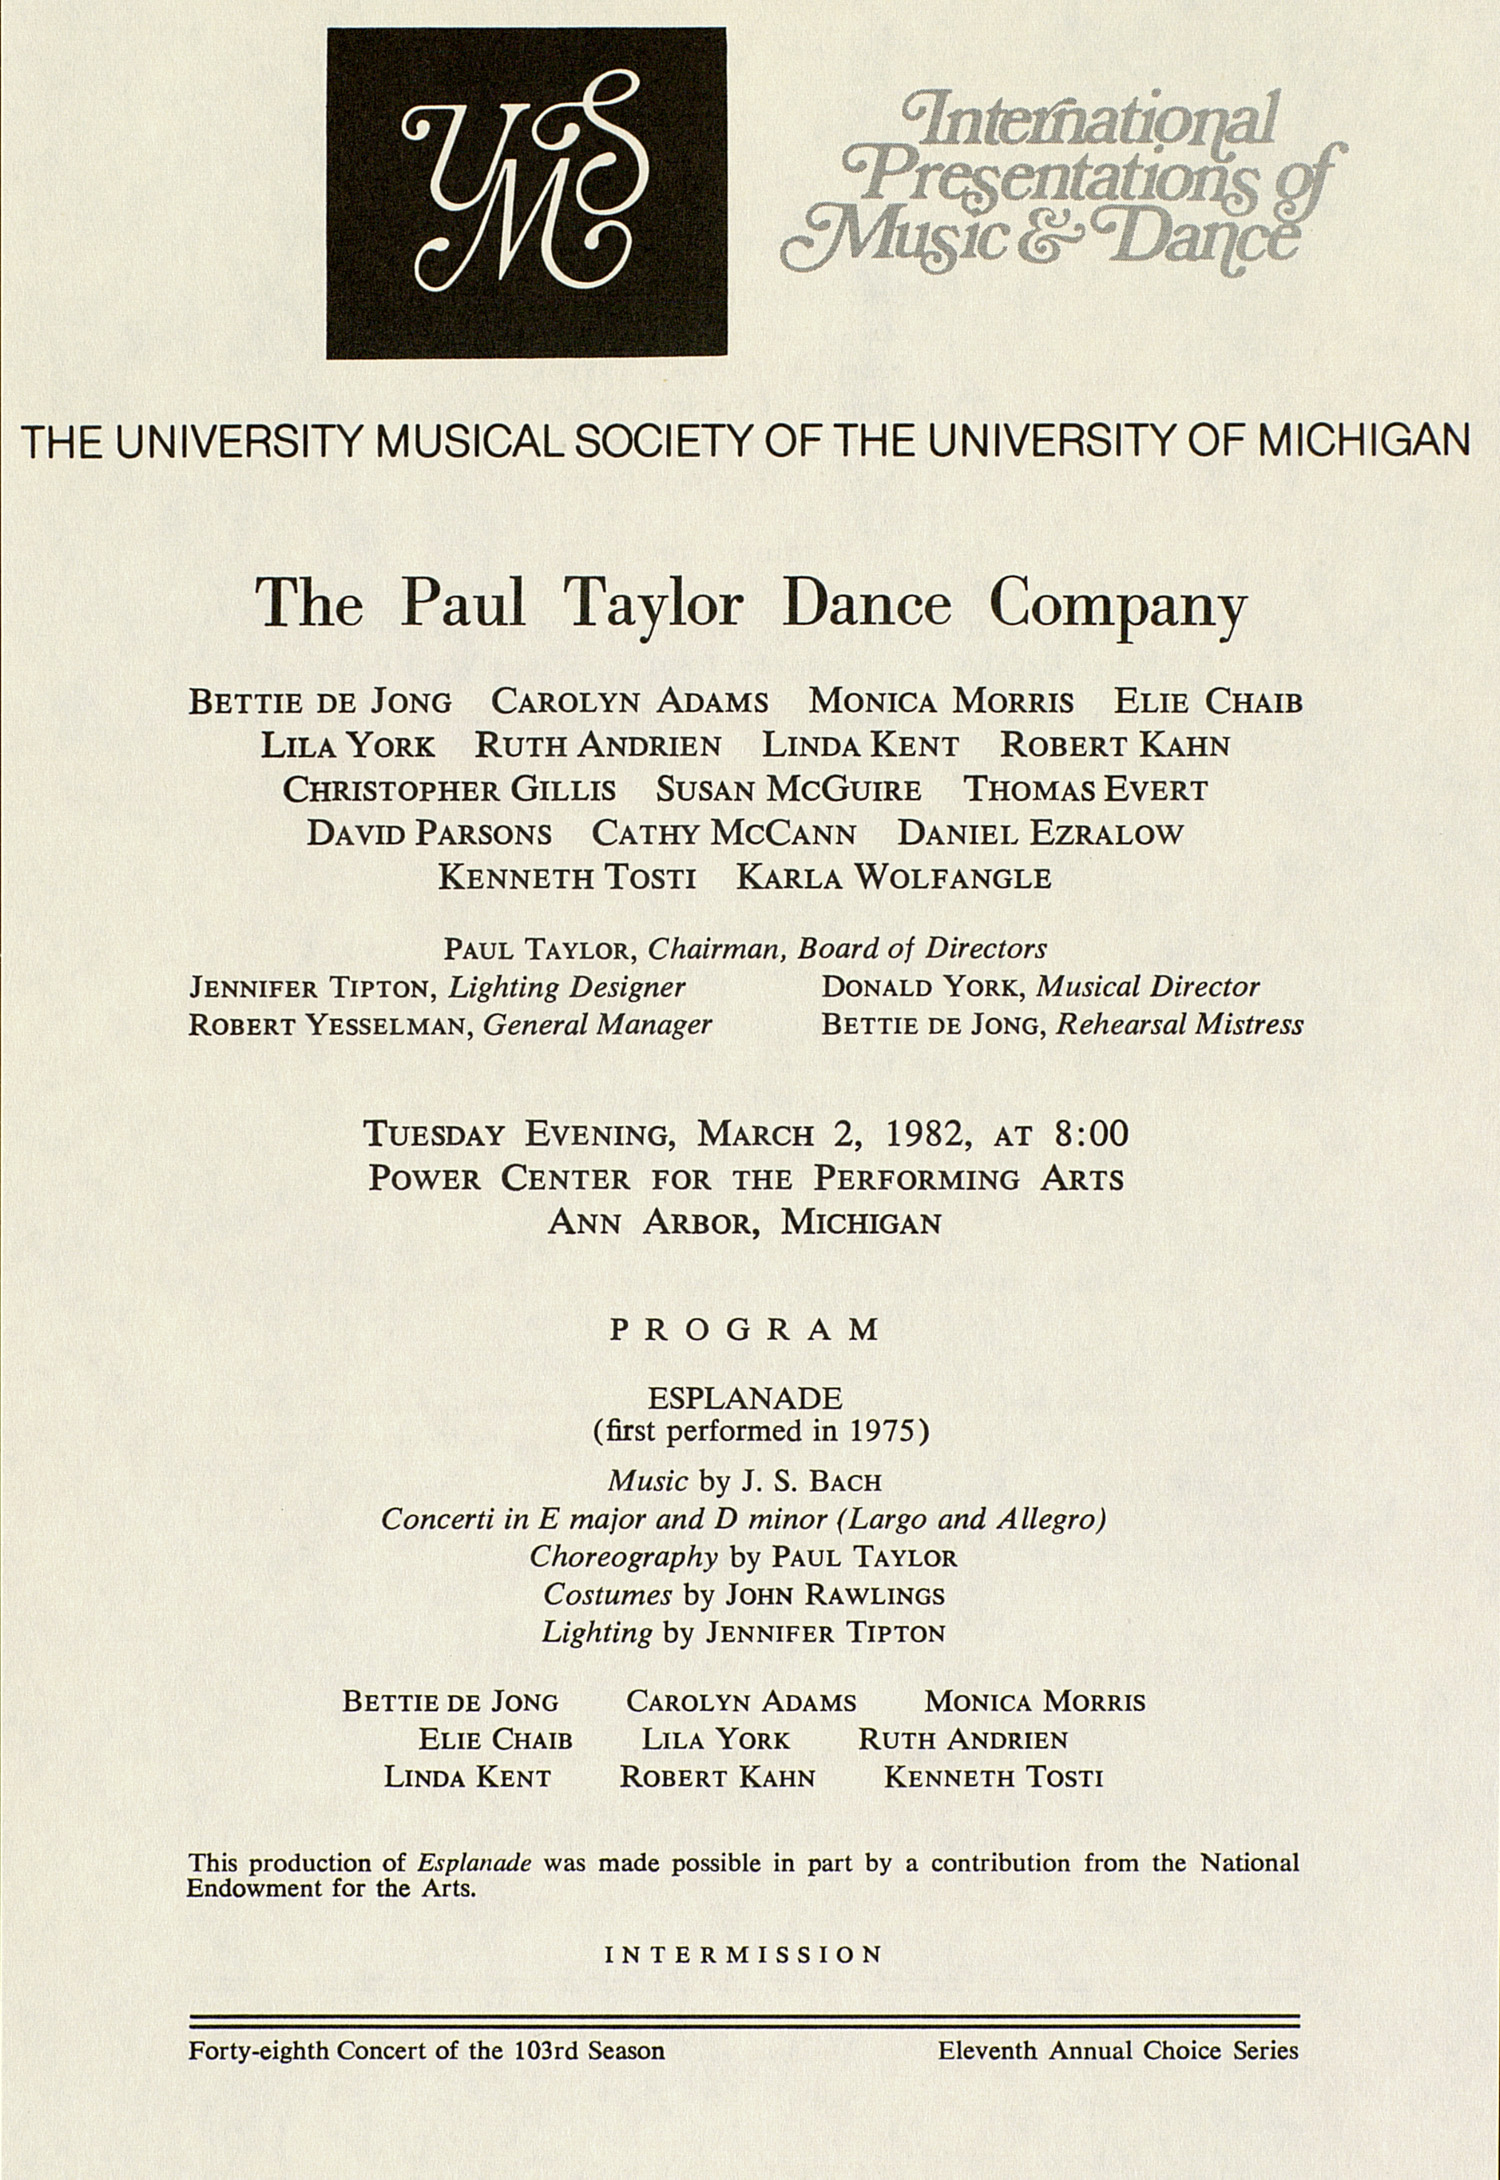 UMS Concert Program, March 2, 1982: International Presentations Of Music & Dance -- The Paul Taylor Dance Company image